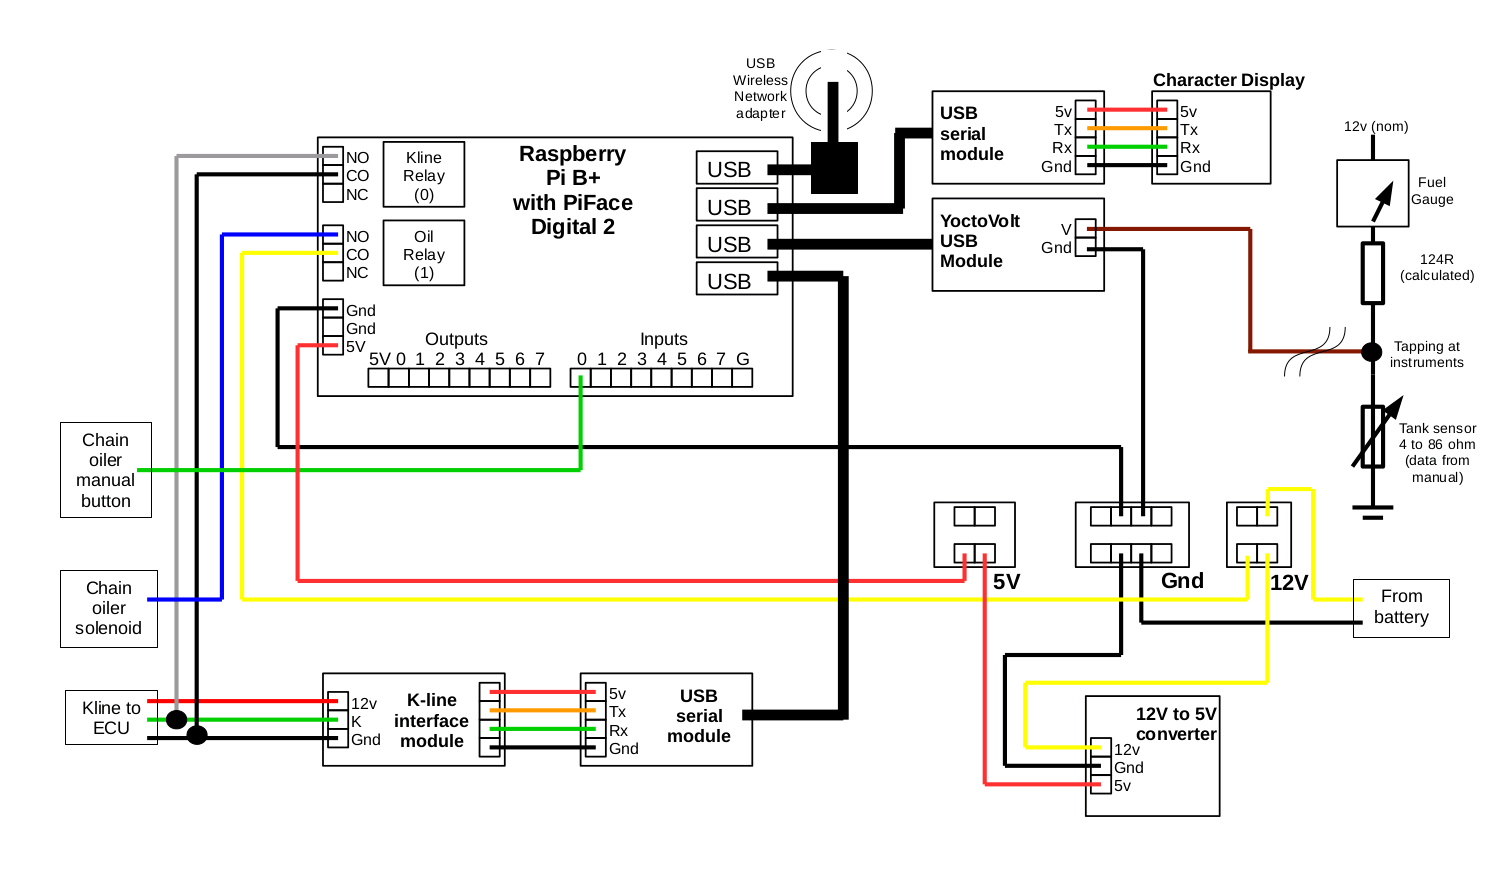 obd to usb wiring diagrams repair wiring scheme. Black Bedroom Furniture Sets. Home Design Ideas